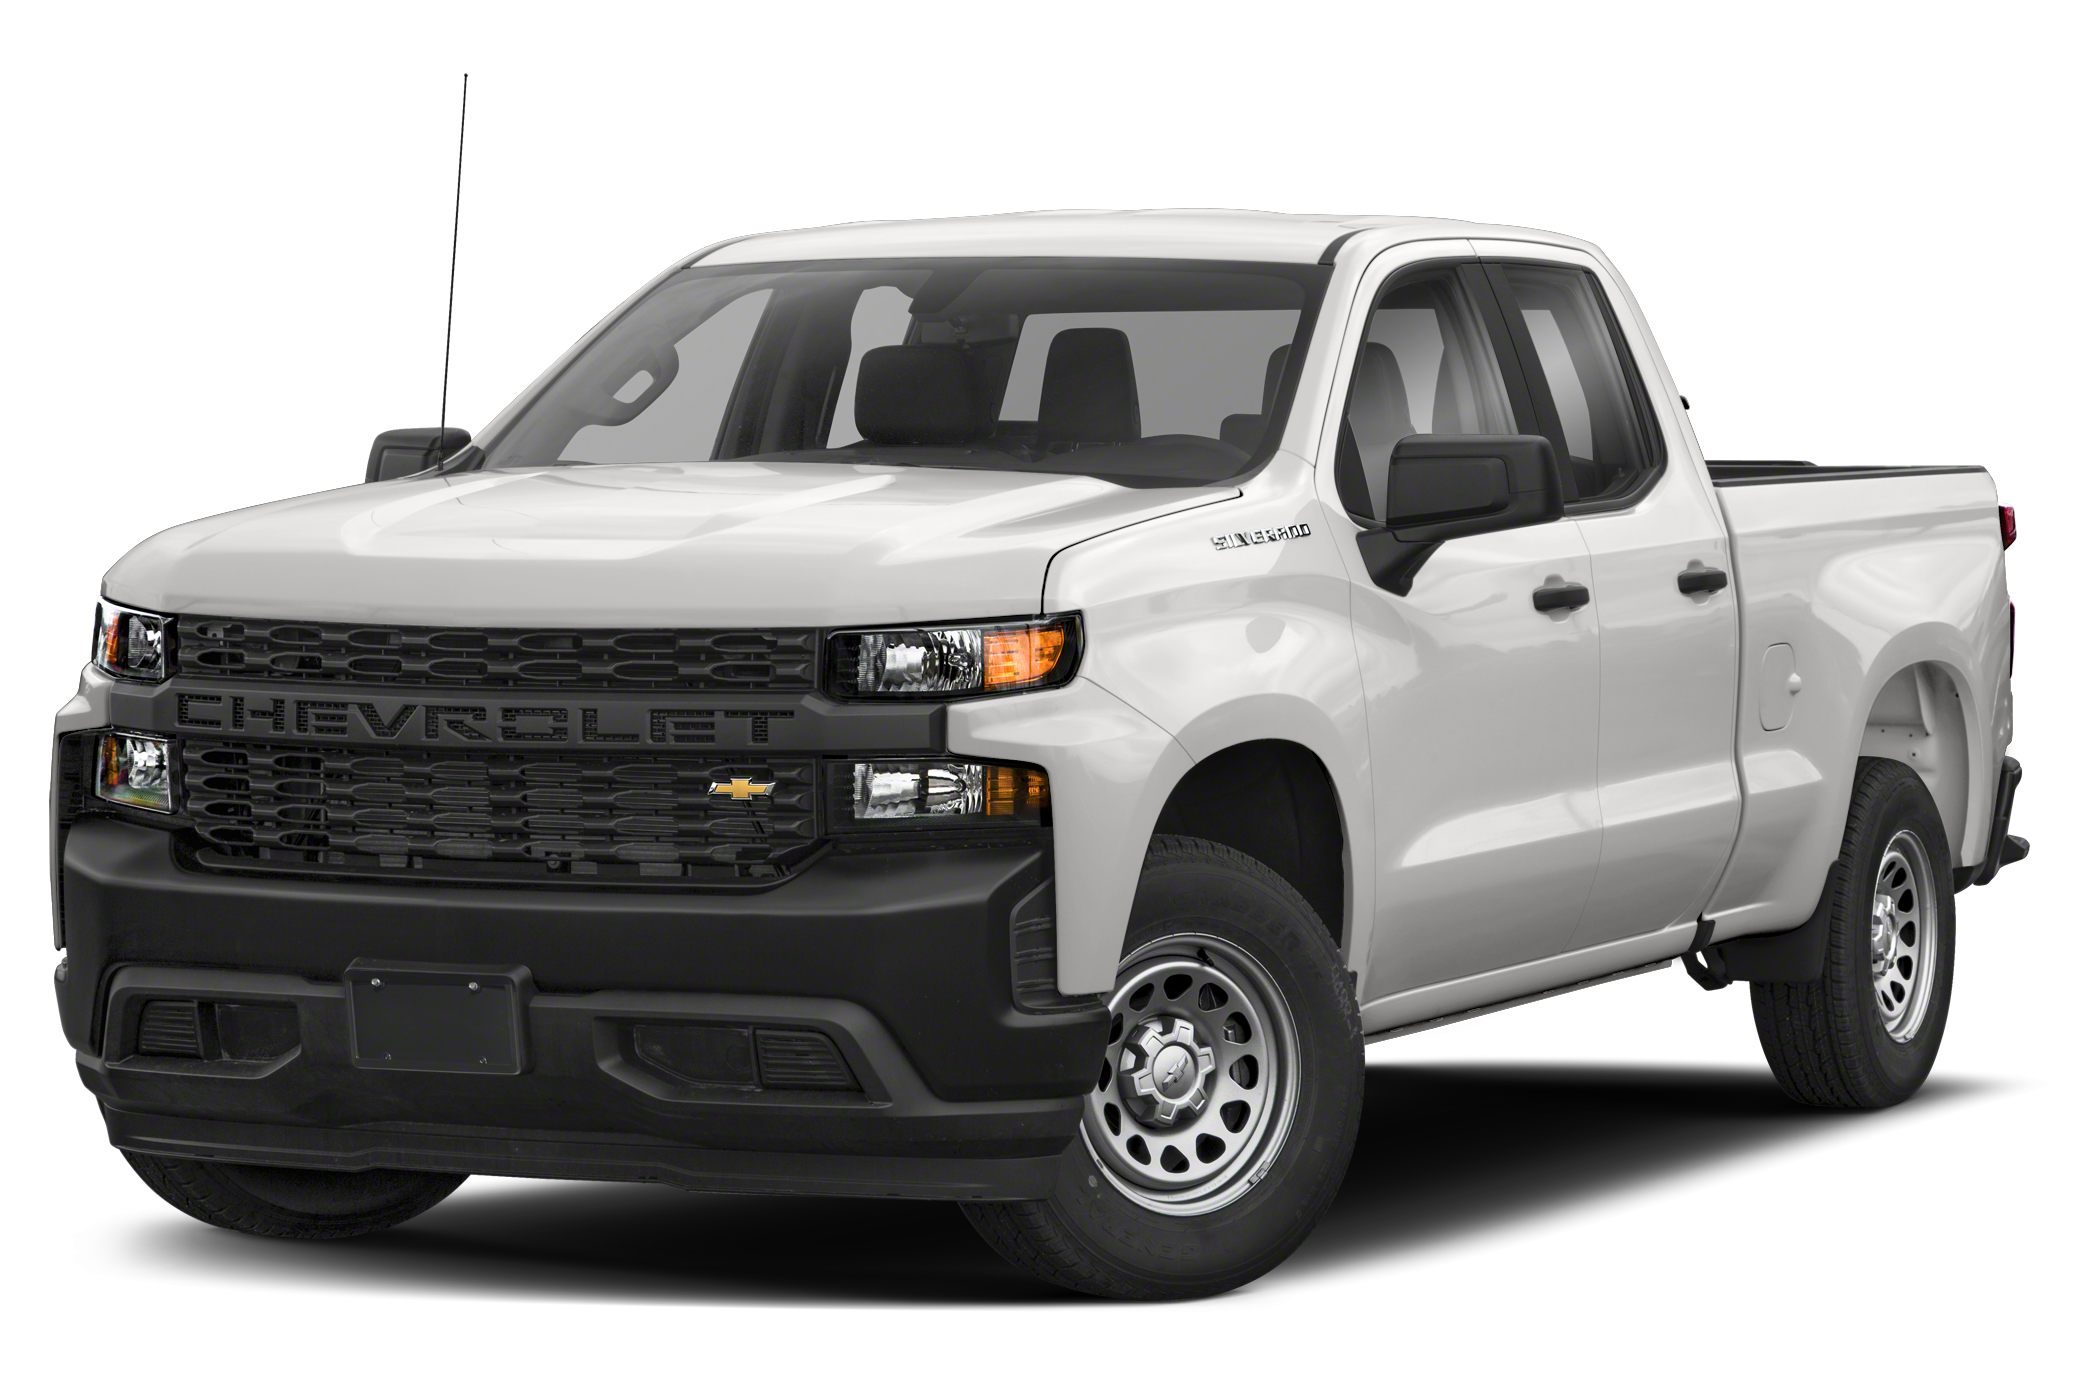 2019 Chevrolet Silverado 1500 Work Truck 4x4 Double Cab 6.6 ft. box 147.4 in. WB